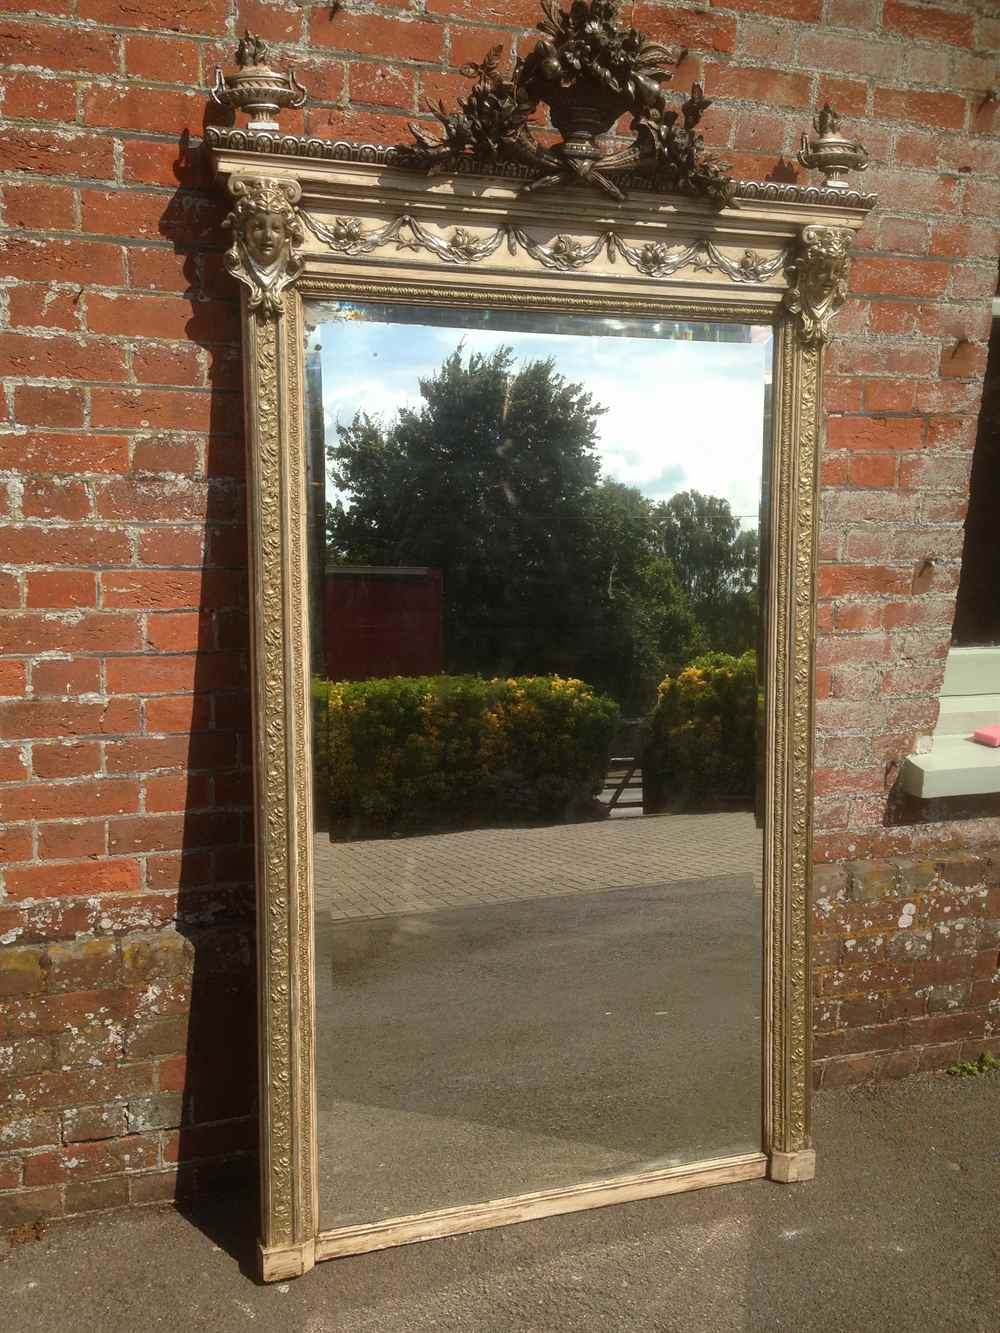 A Stunning Very Decorative Very Large Antique 19th Century French Regarding Antique Large Mirror (Image 4 of 15)